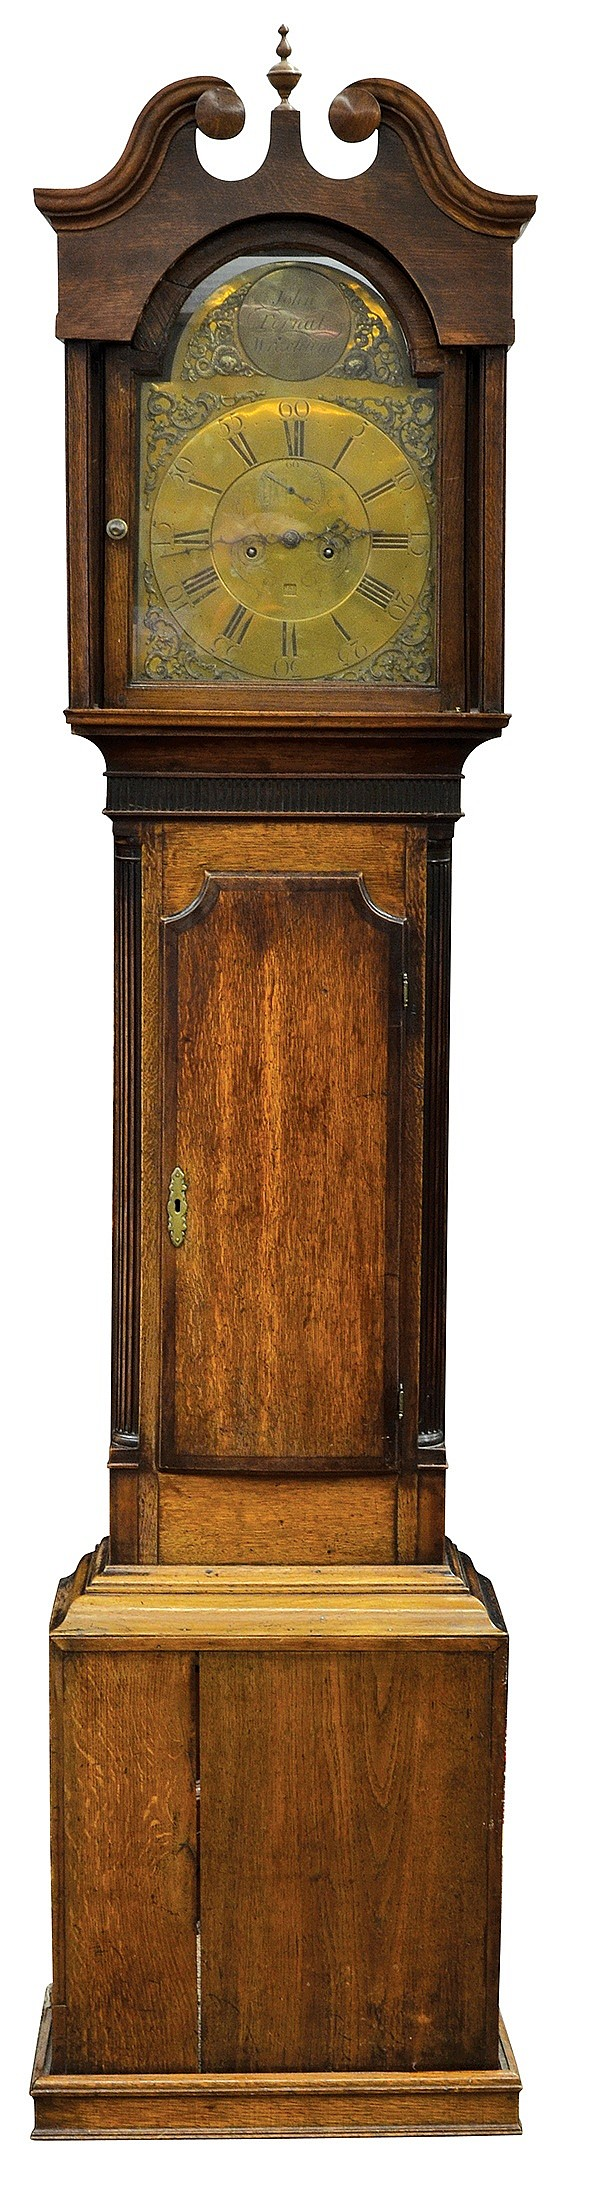 George III oak tall case clock